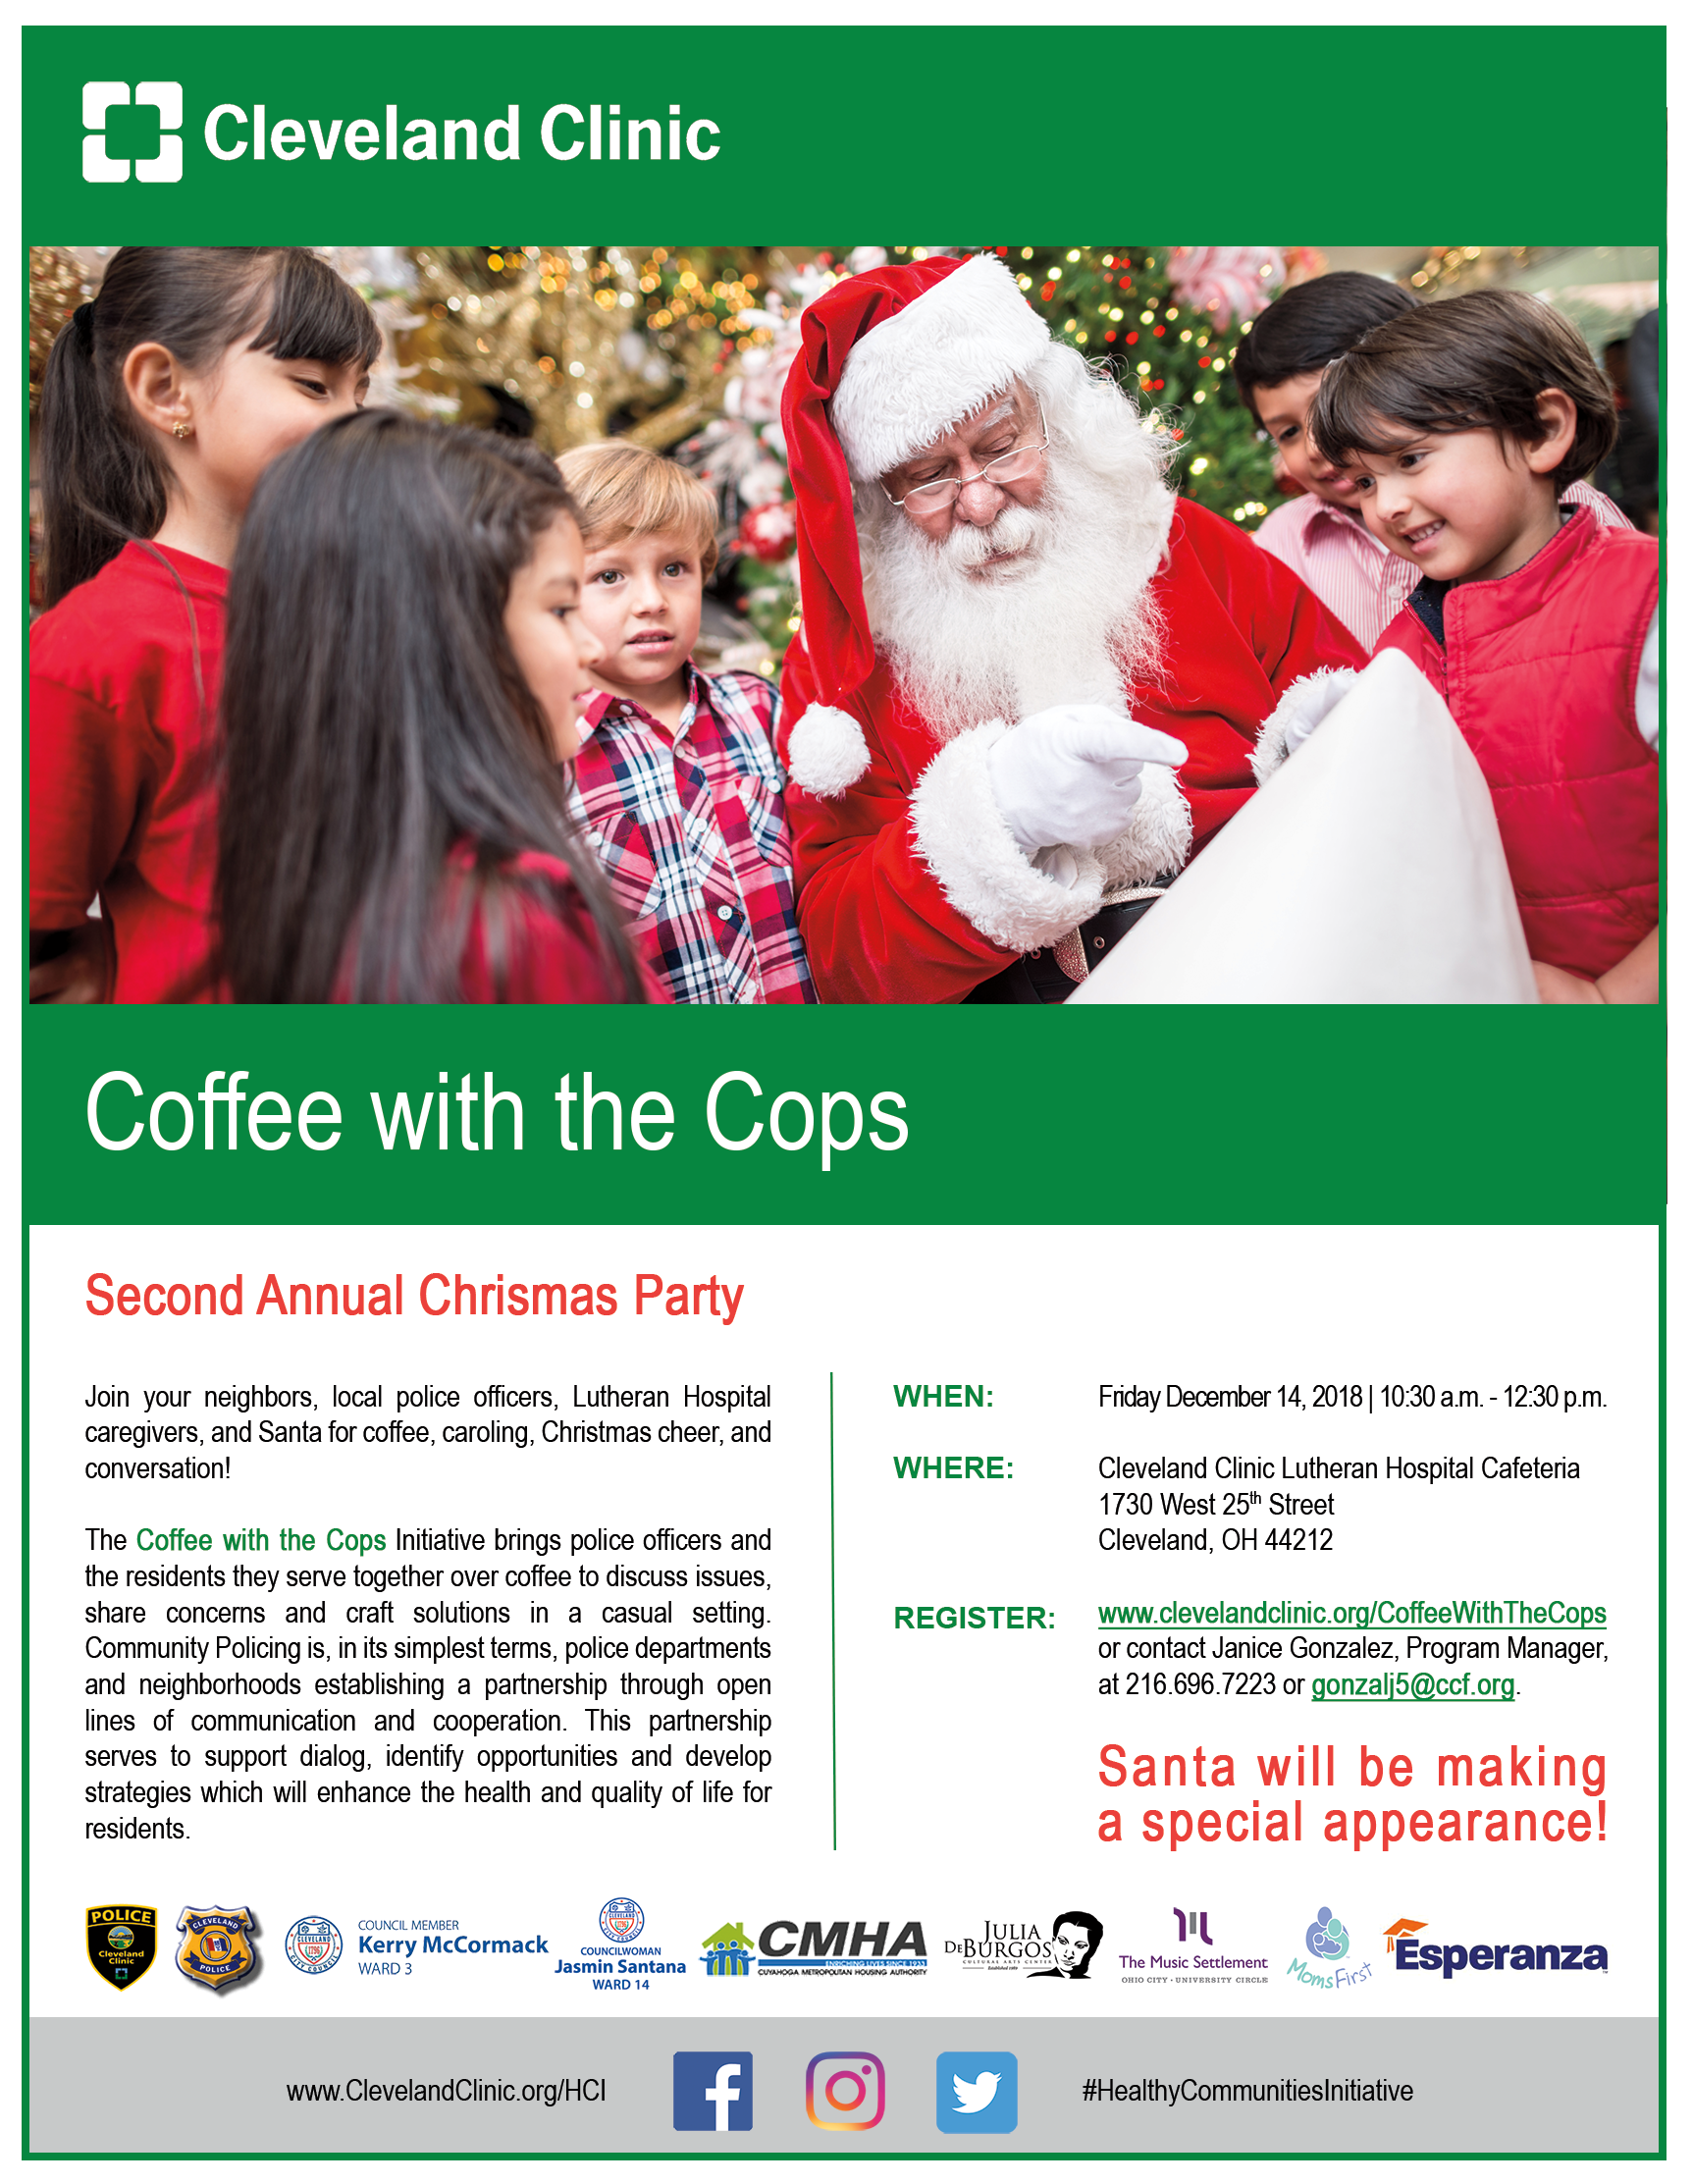 Coffee with the Cops Flier 12.14.2018 Lutheran Hospital FINAL.png